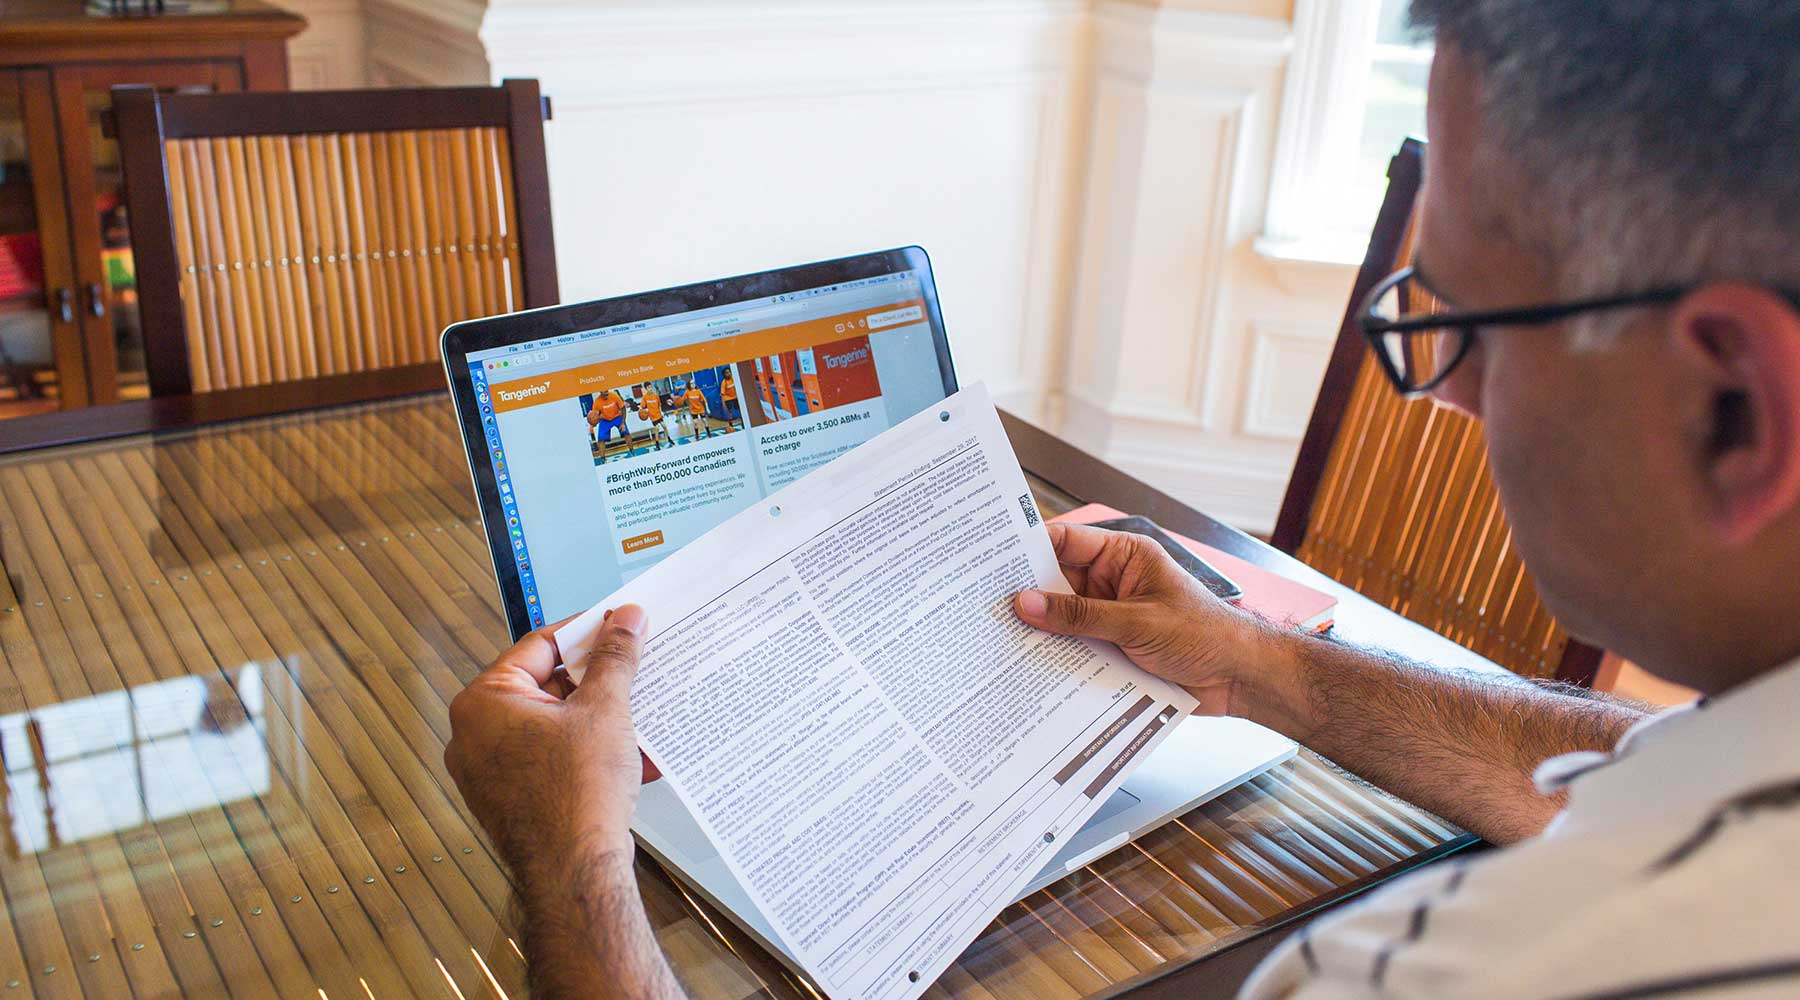 Image of man sitting at a table with his laptop open reading a form.